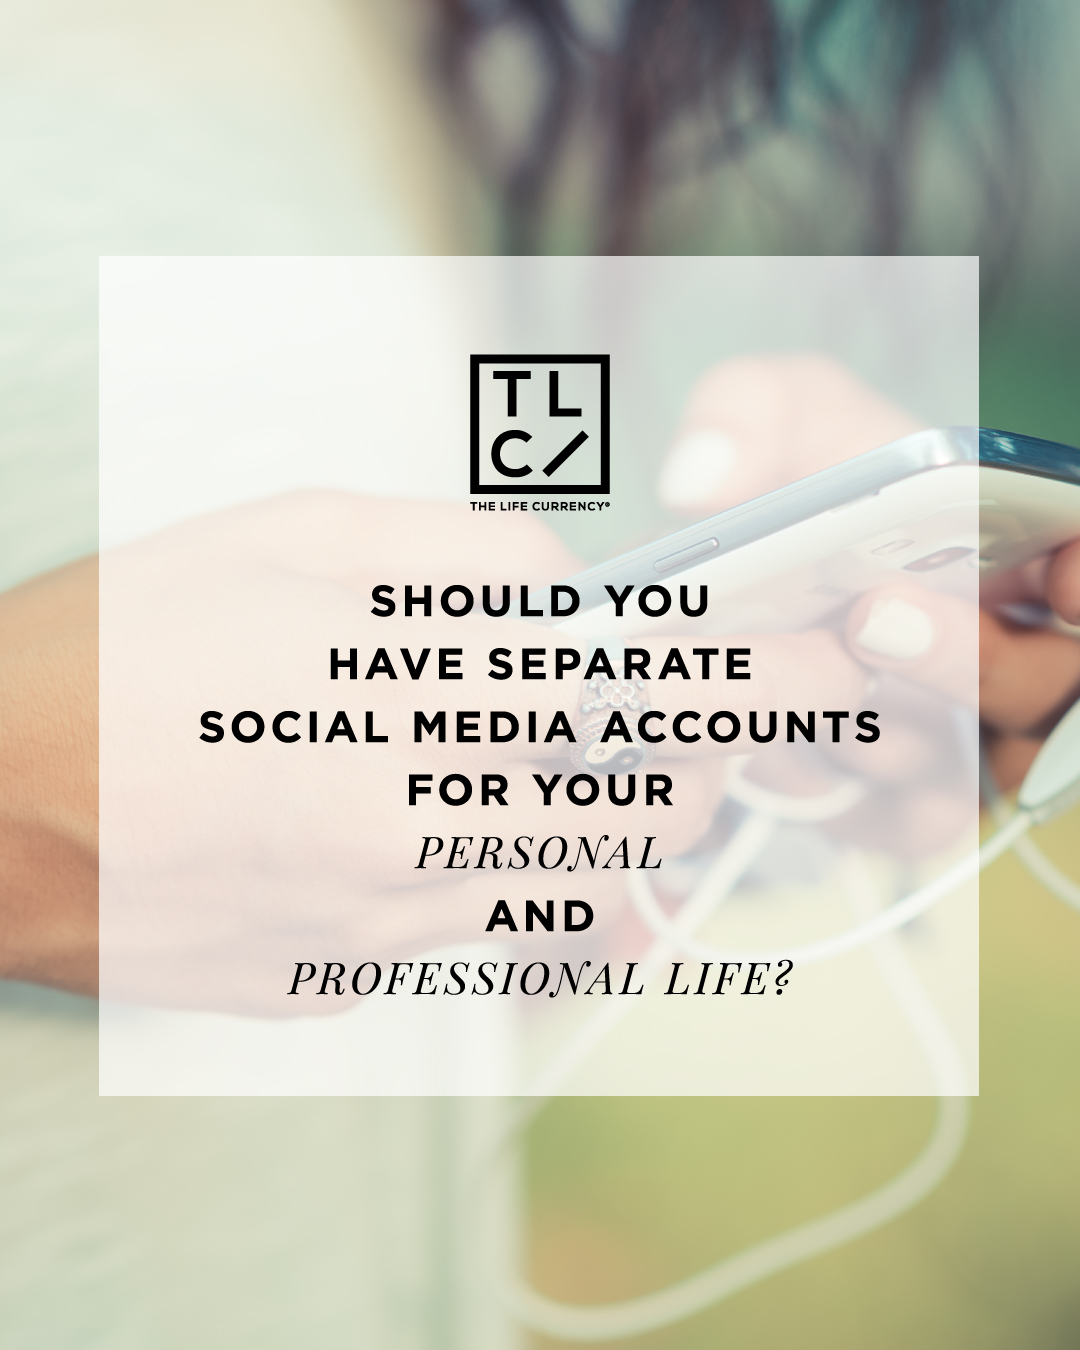 Should You Have Separate Social Media Accounts for Your Personal and Professional Life?